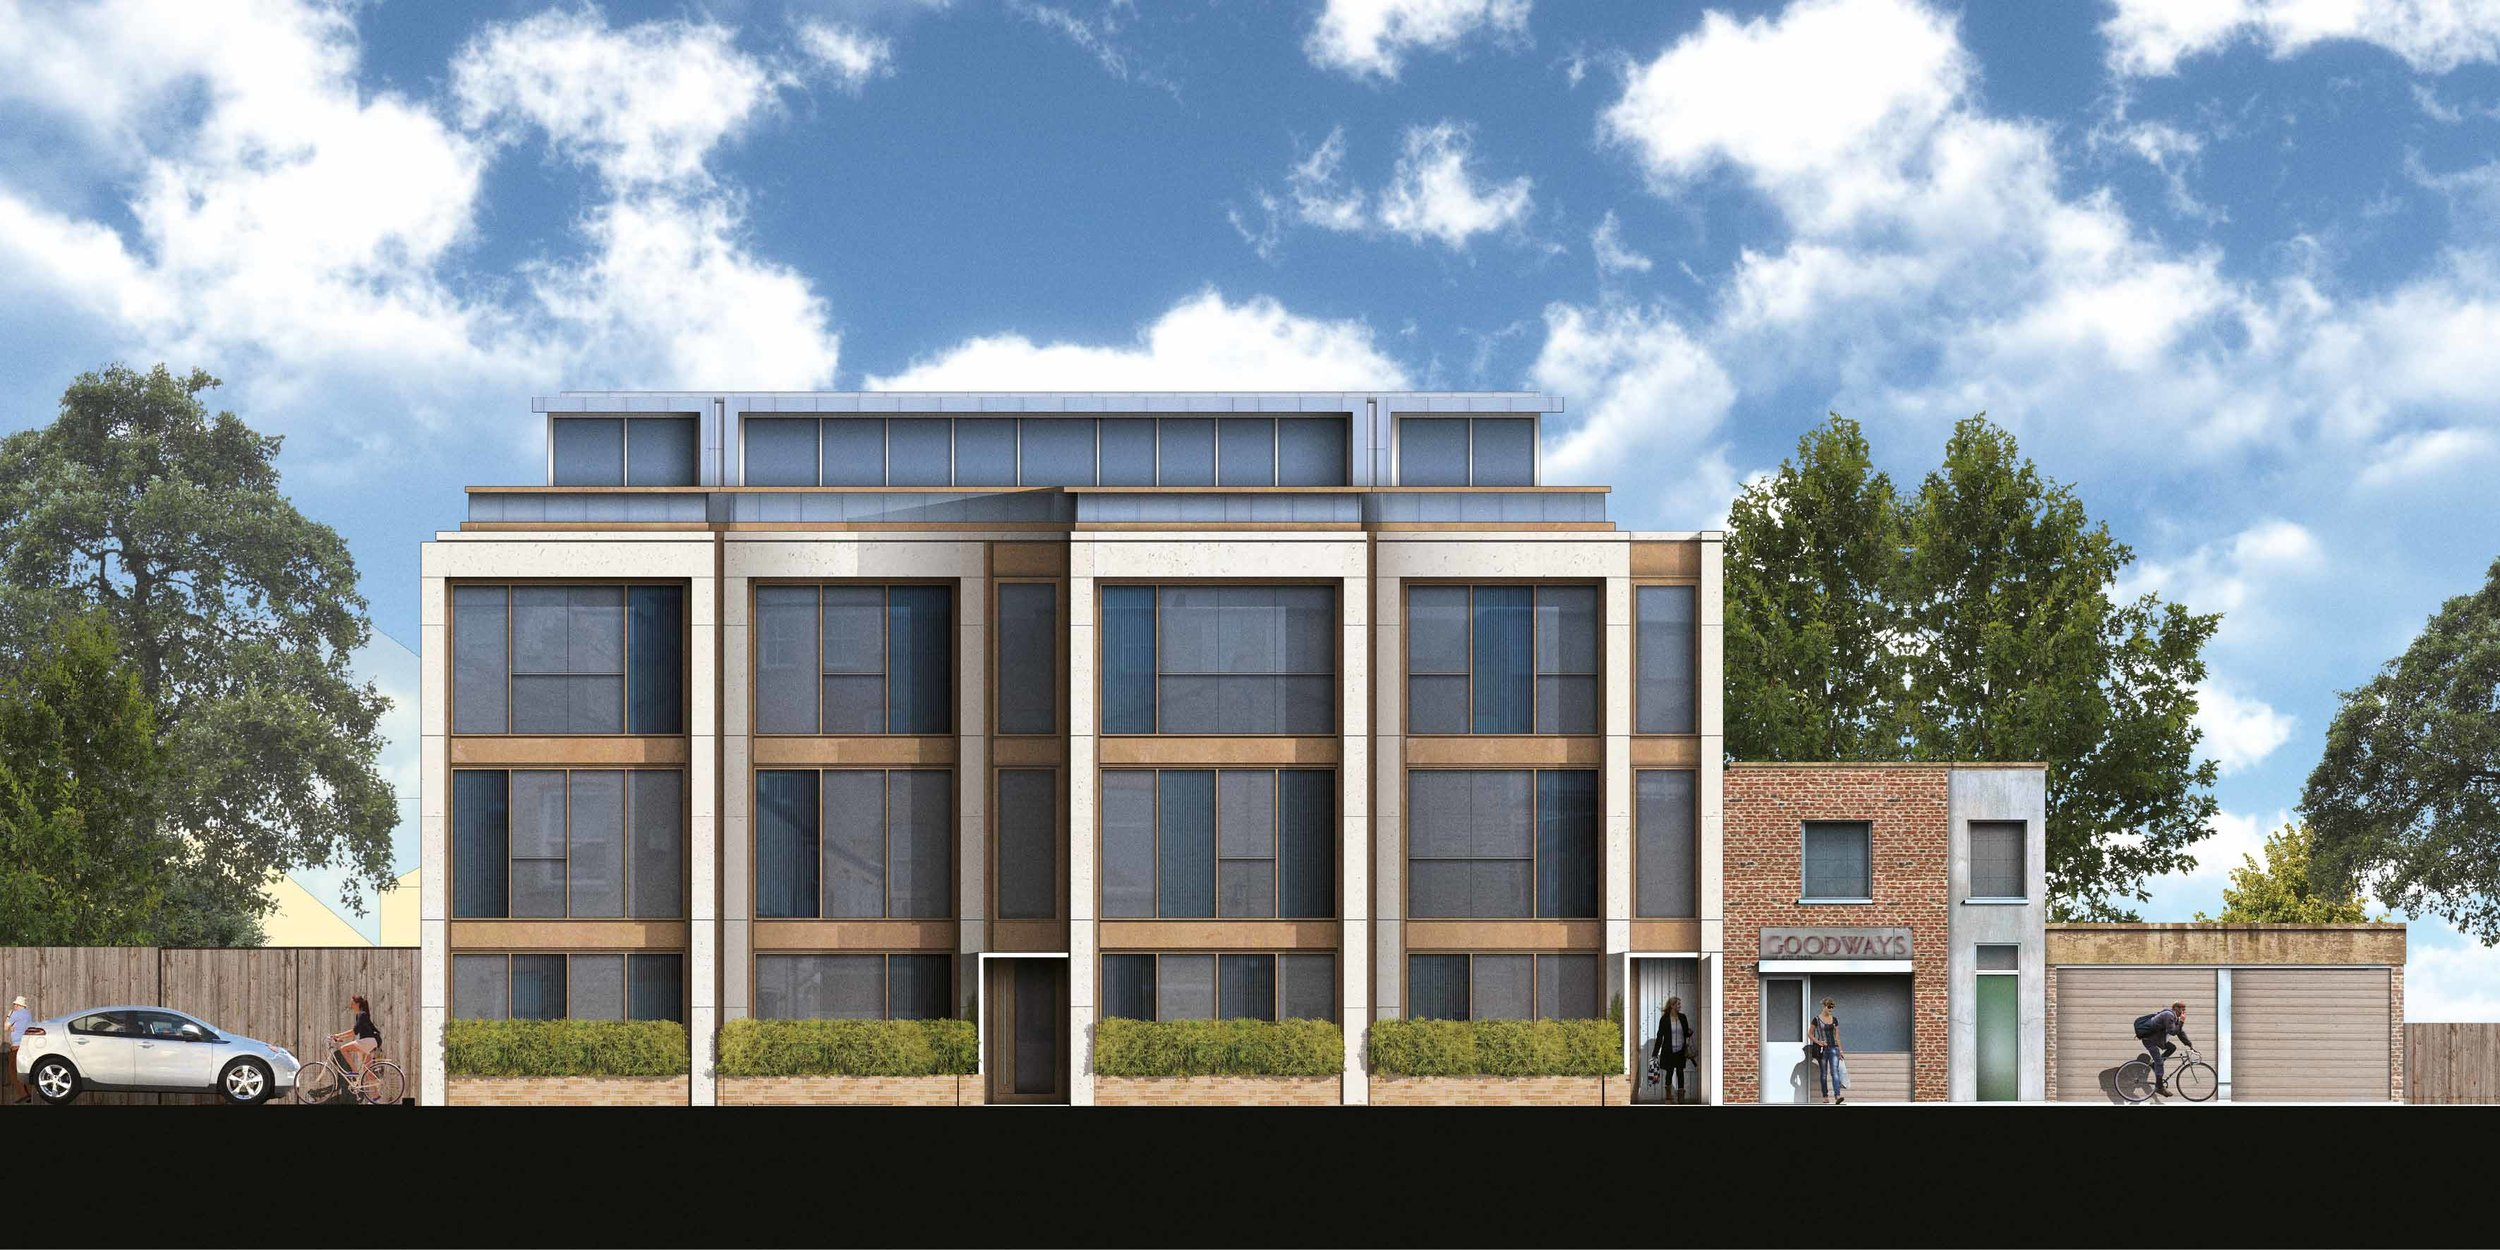 Stuart Forbes Associates has designed this sympathetic infill development to complete a residential pocket in West Norwood. Close to the West Norwood and Lancaster Avenue conservation areas in the London Borough of Lambeth. The project is currently under planning consideration.